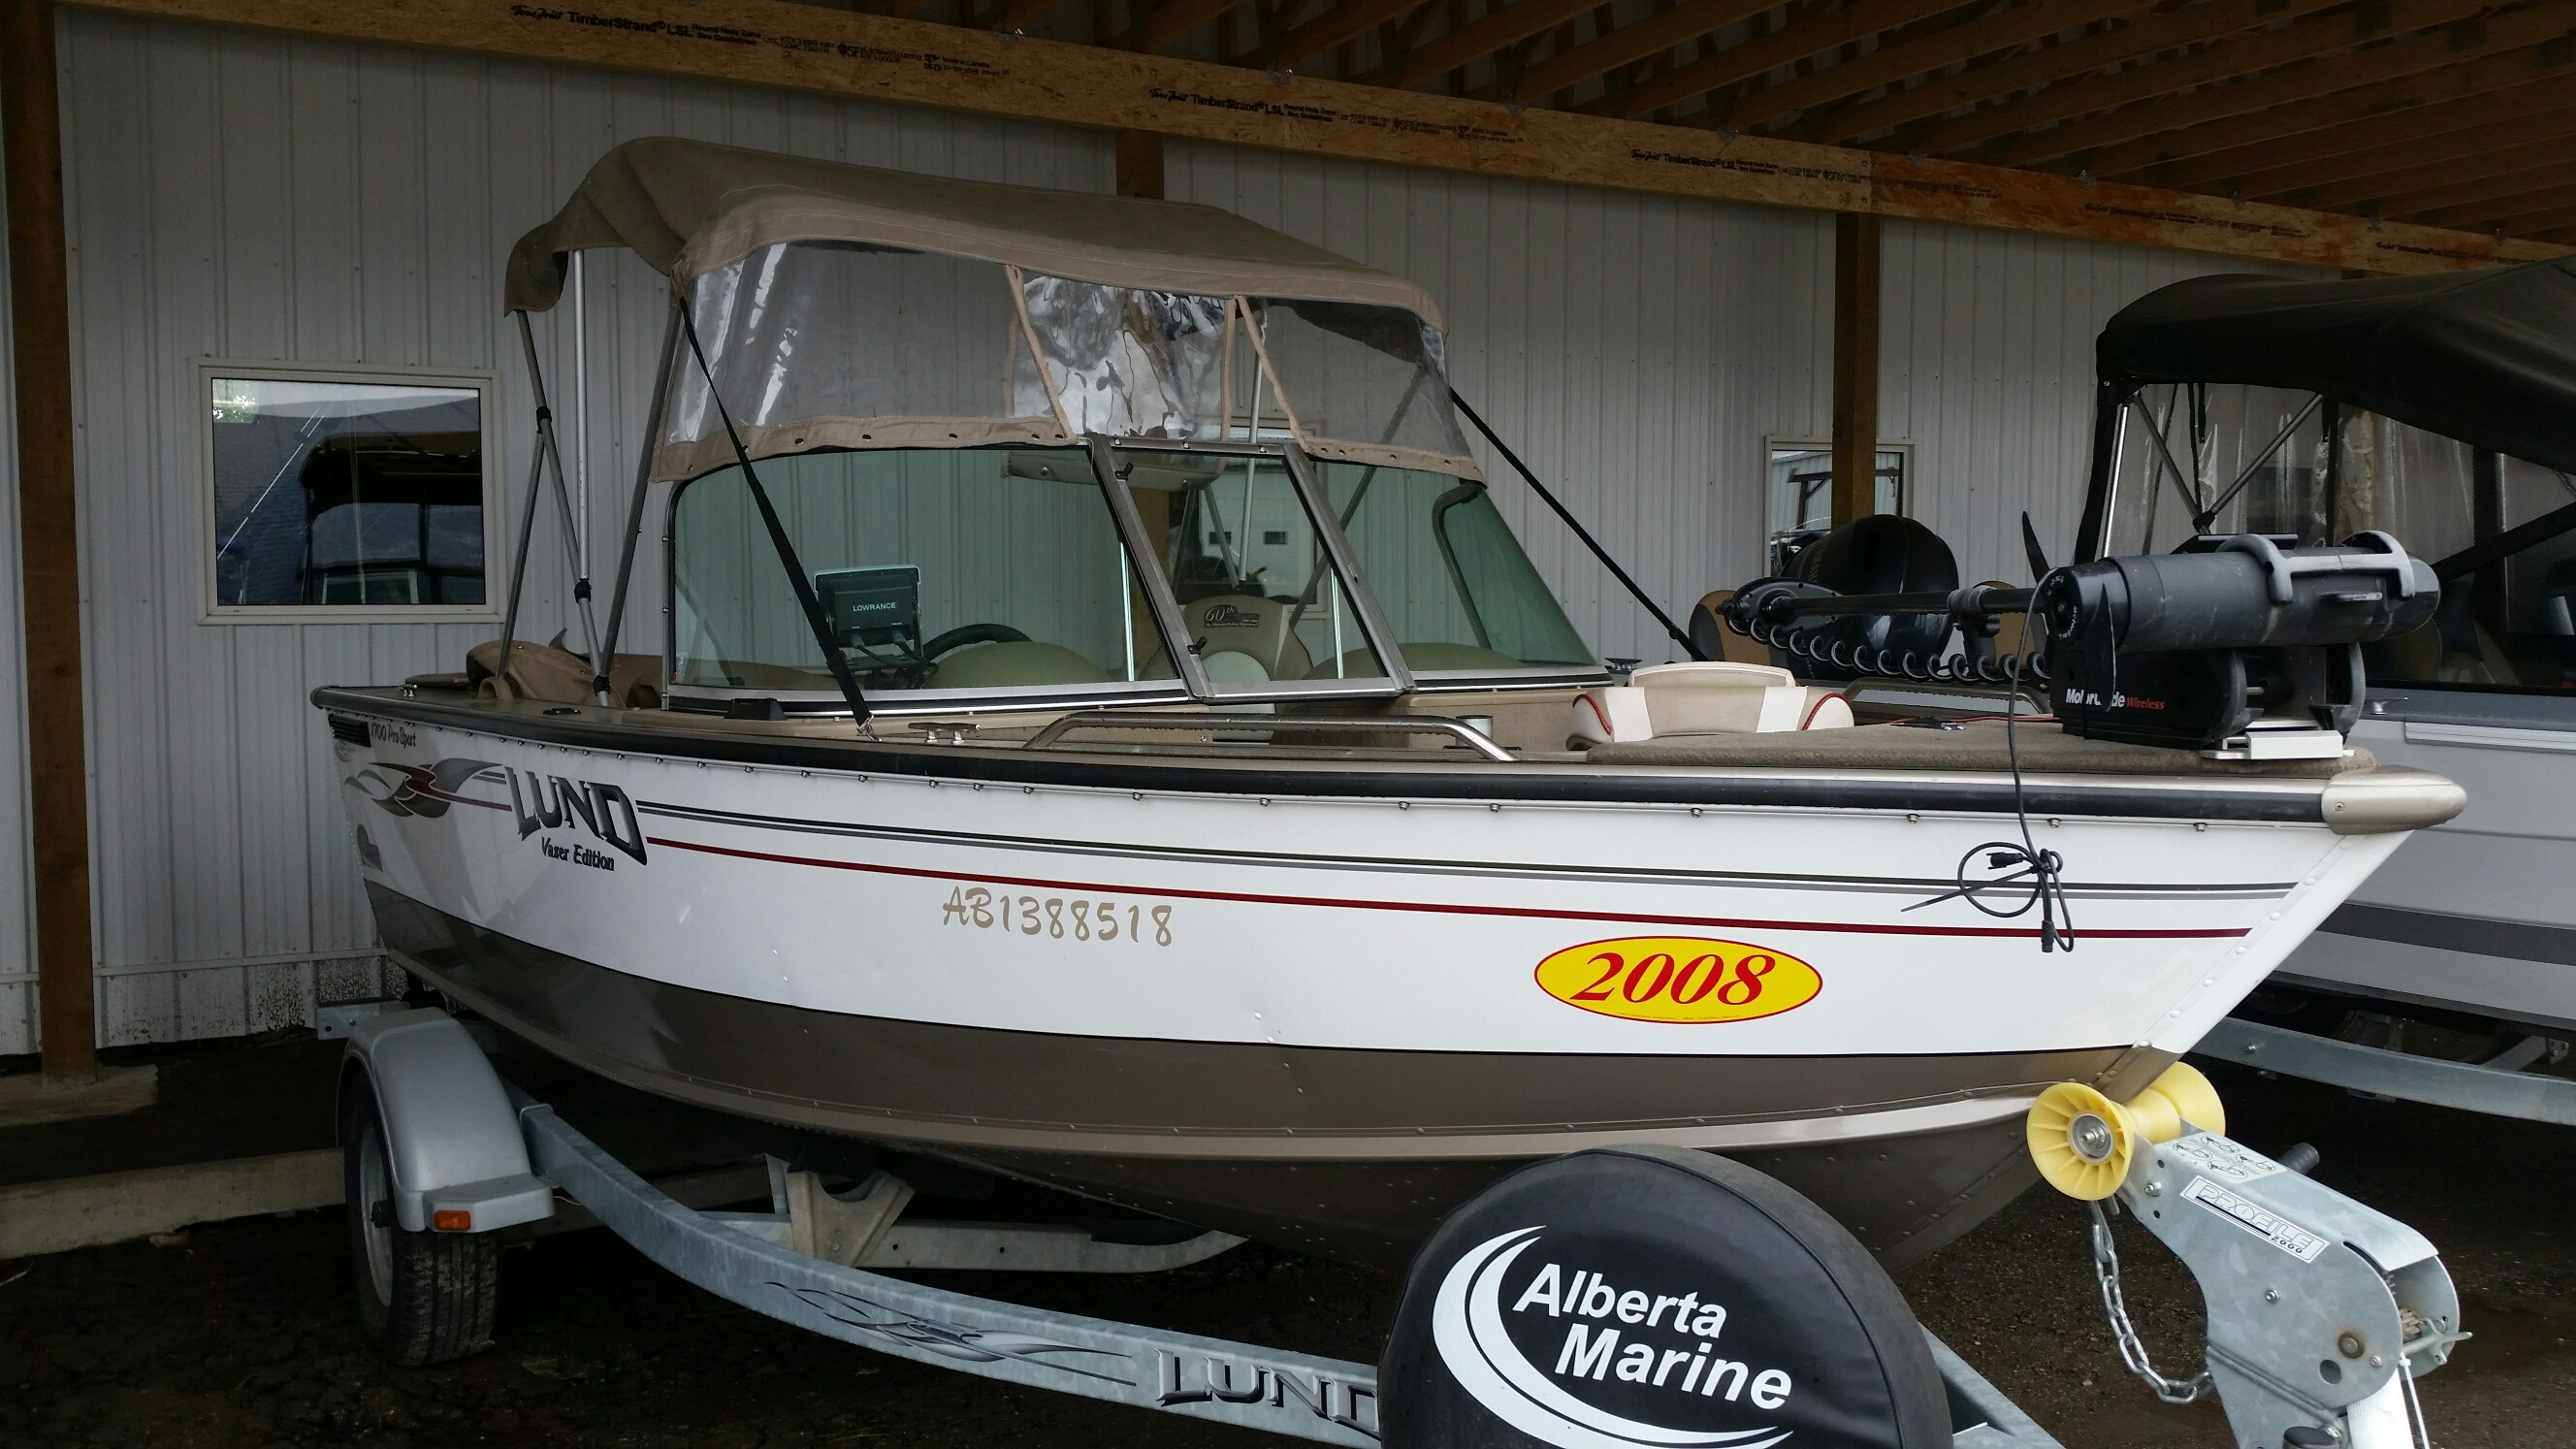 Lund 1700 pro sport vazer edition 2008 used boat for sale for Used lund fishing boats for sale